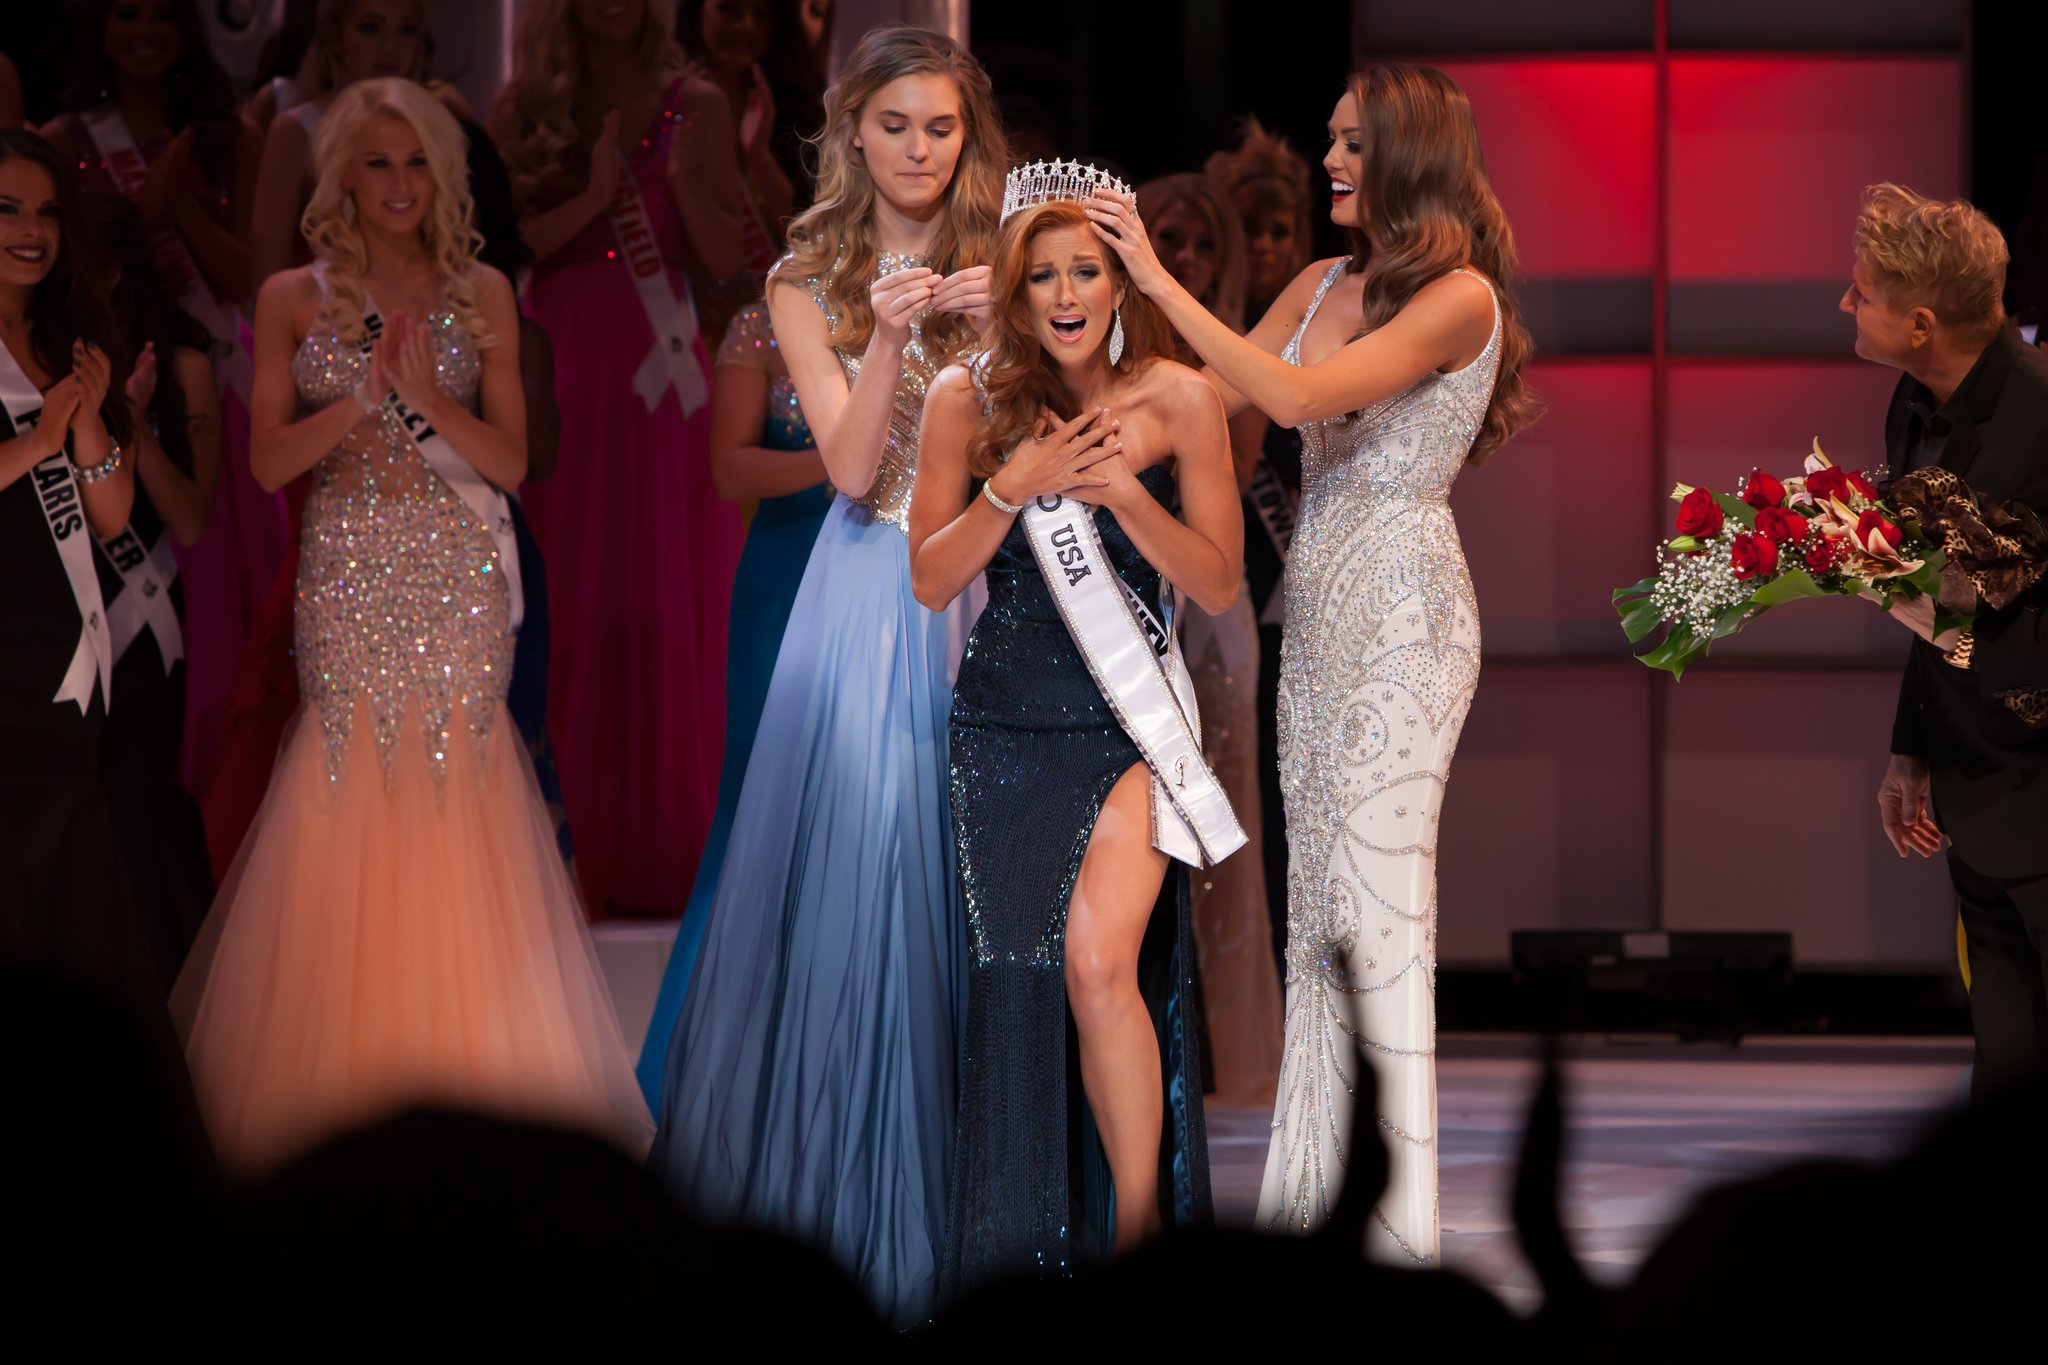 Southeast Ohio teacher reigns as Miss Ohio USA